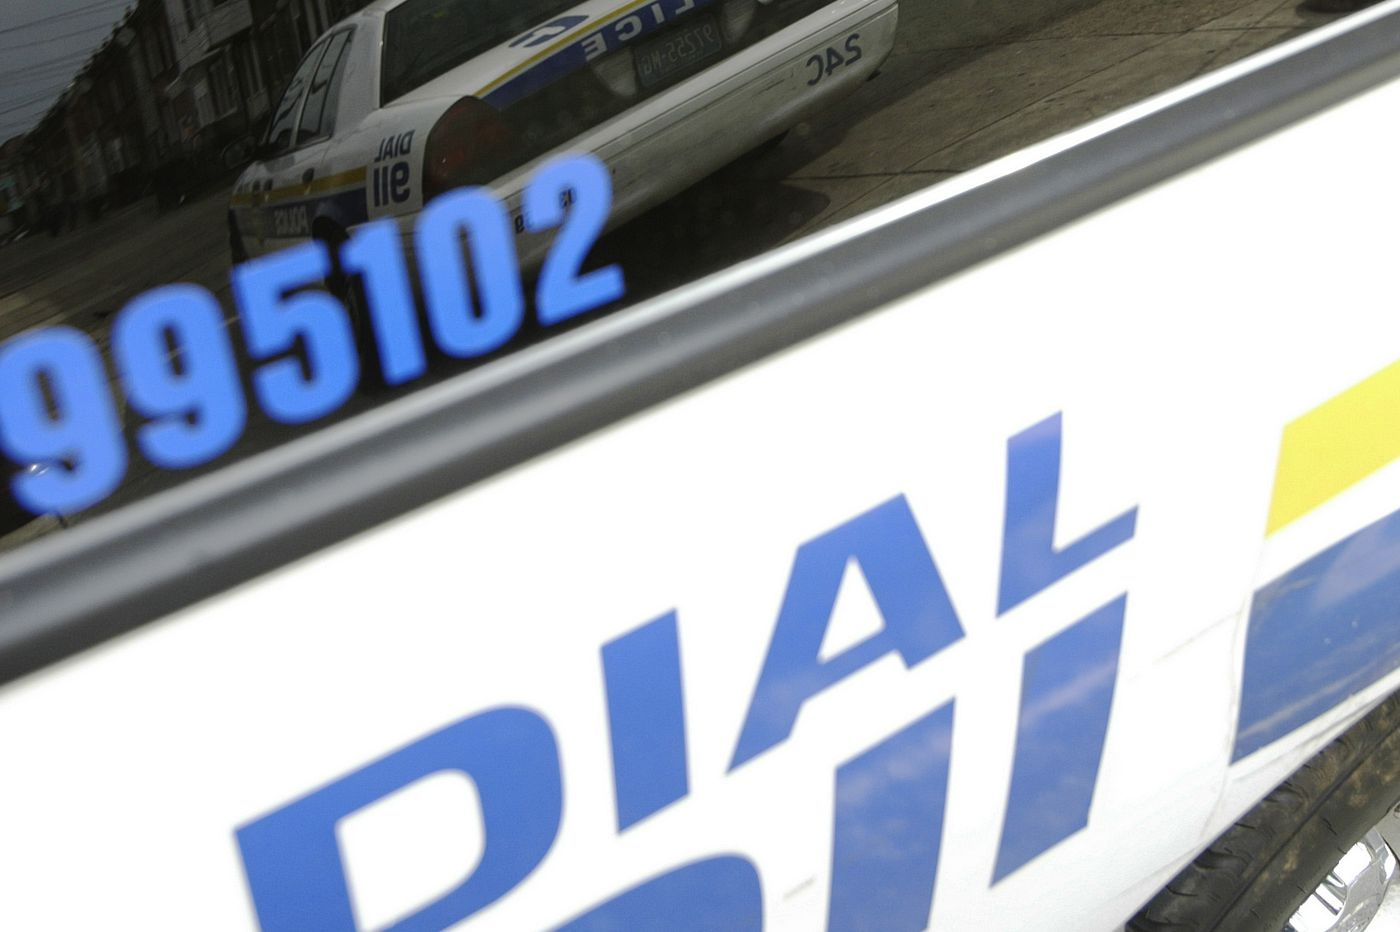 Philly cop charged with lying about arrest